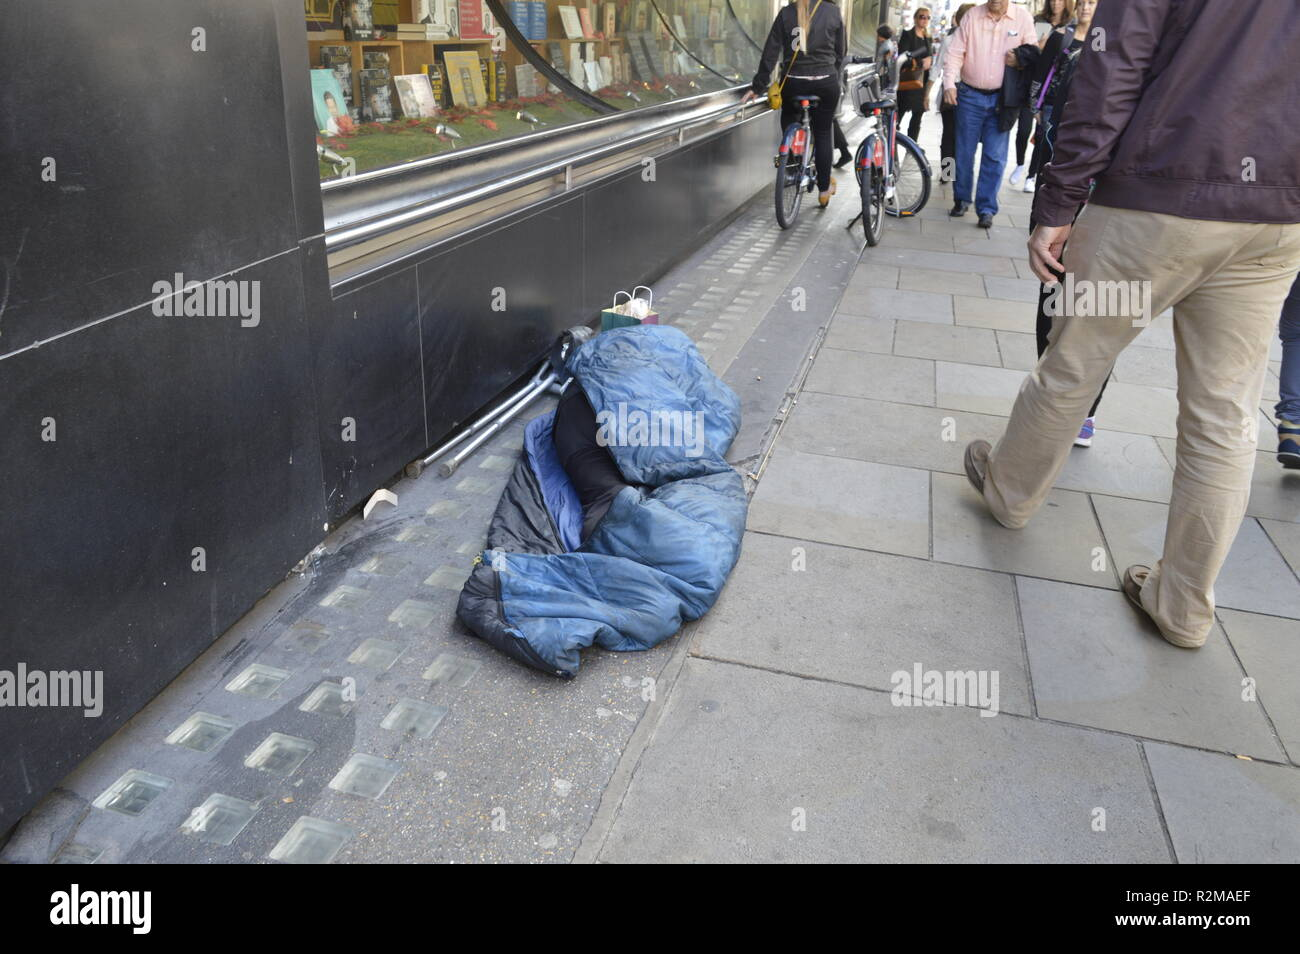 Homeless beggar asleep in a Piccadilly Street, London, UK. Itinerant workers come to England with little or no money for a bed for the night. - Stock Image